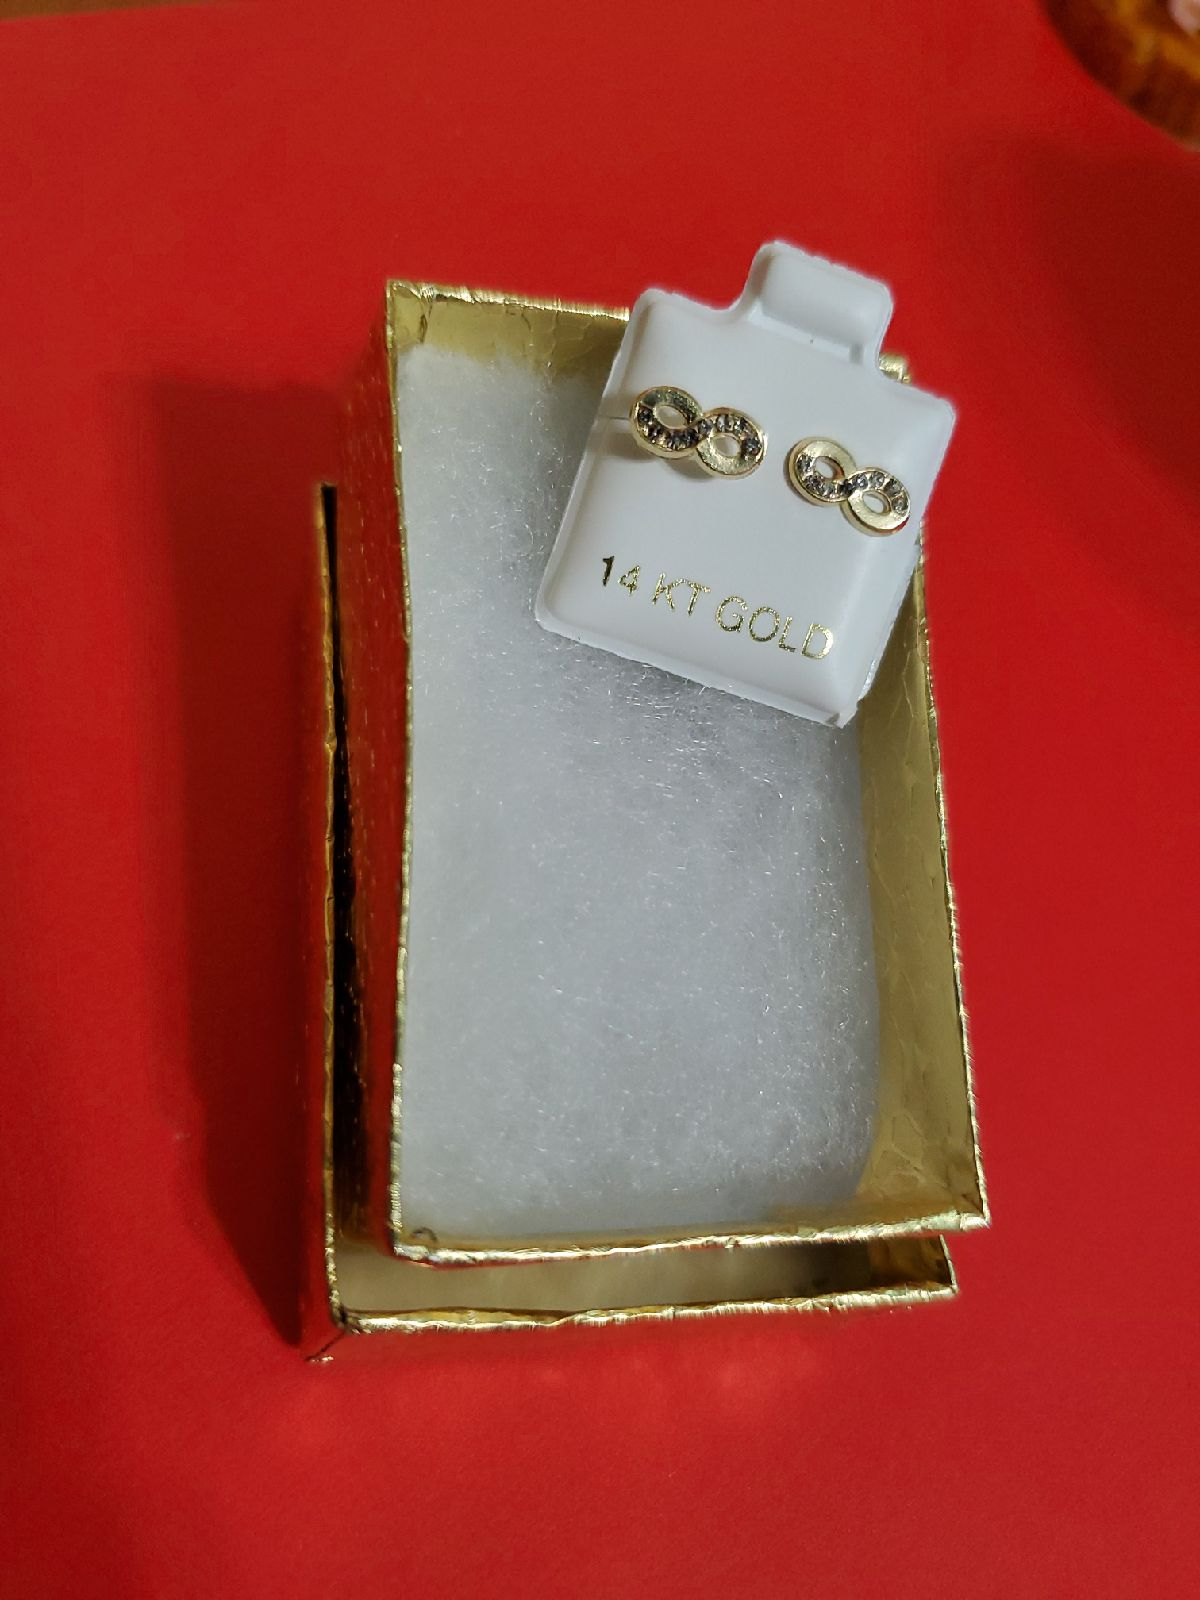 A INFINITY 14 K Gold earrings firm price